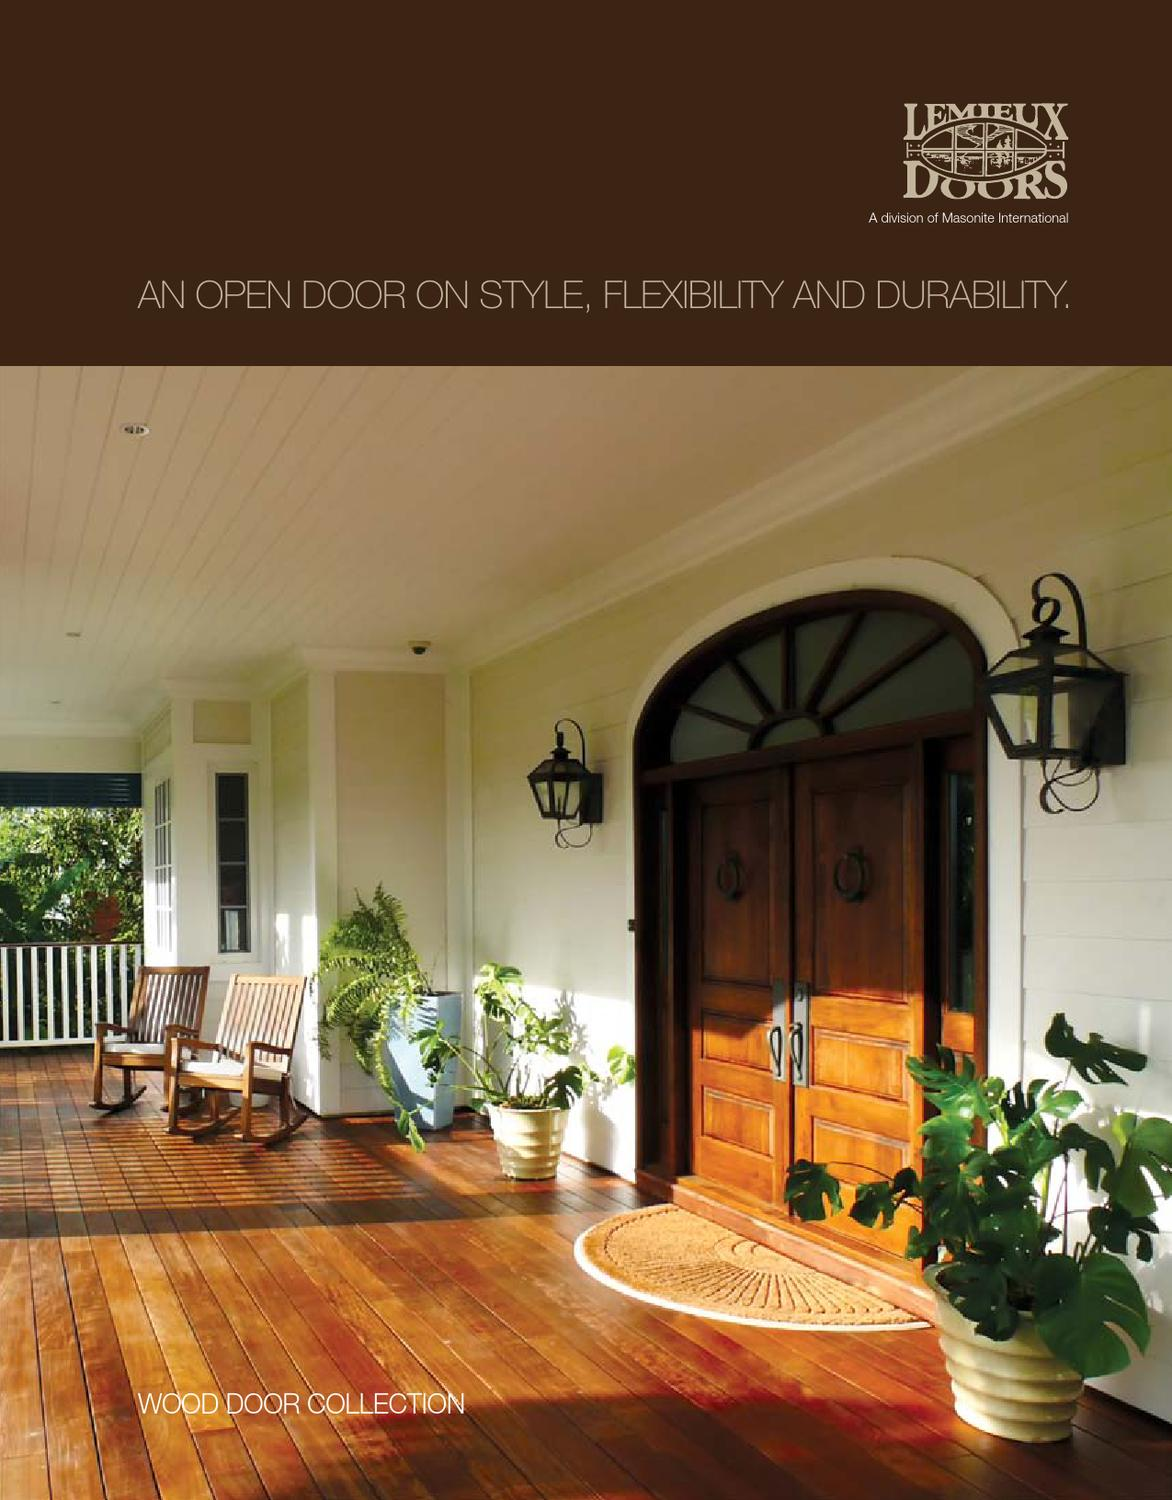 Lemieux Catalog By Western Building Products Issuu